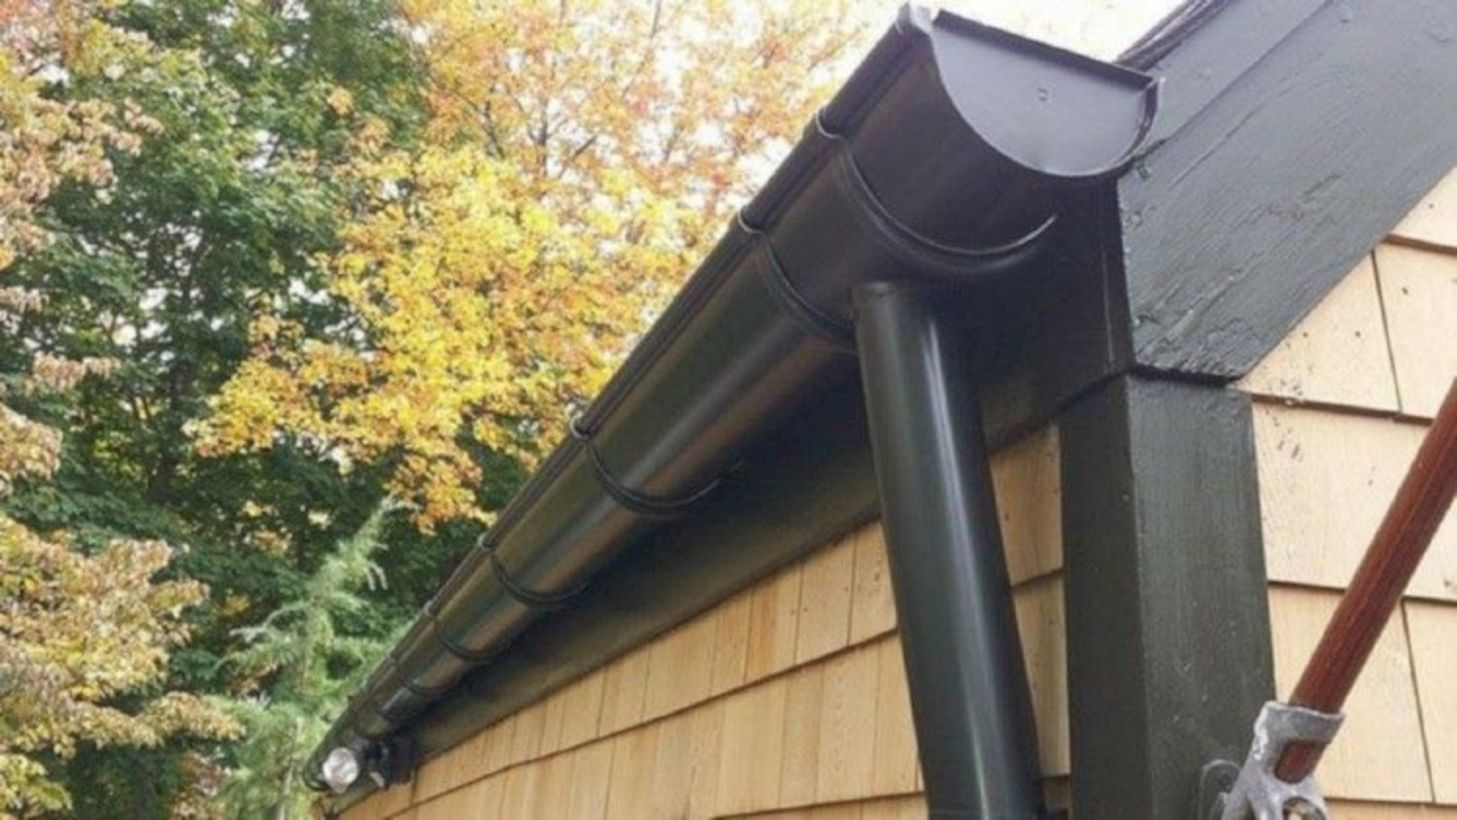 47 Cozy Water Roof Ideas For Home With Black Gutters Gutters Elegant Homes Gutter